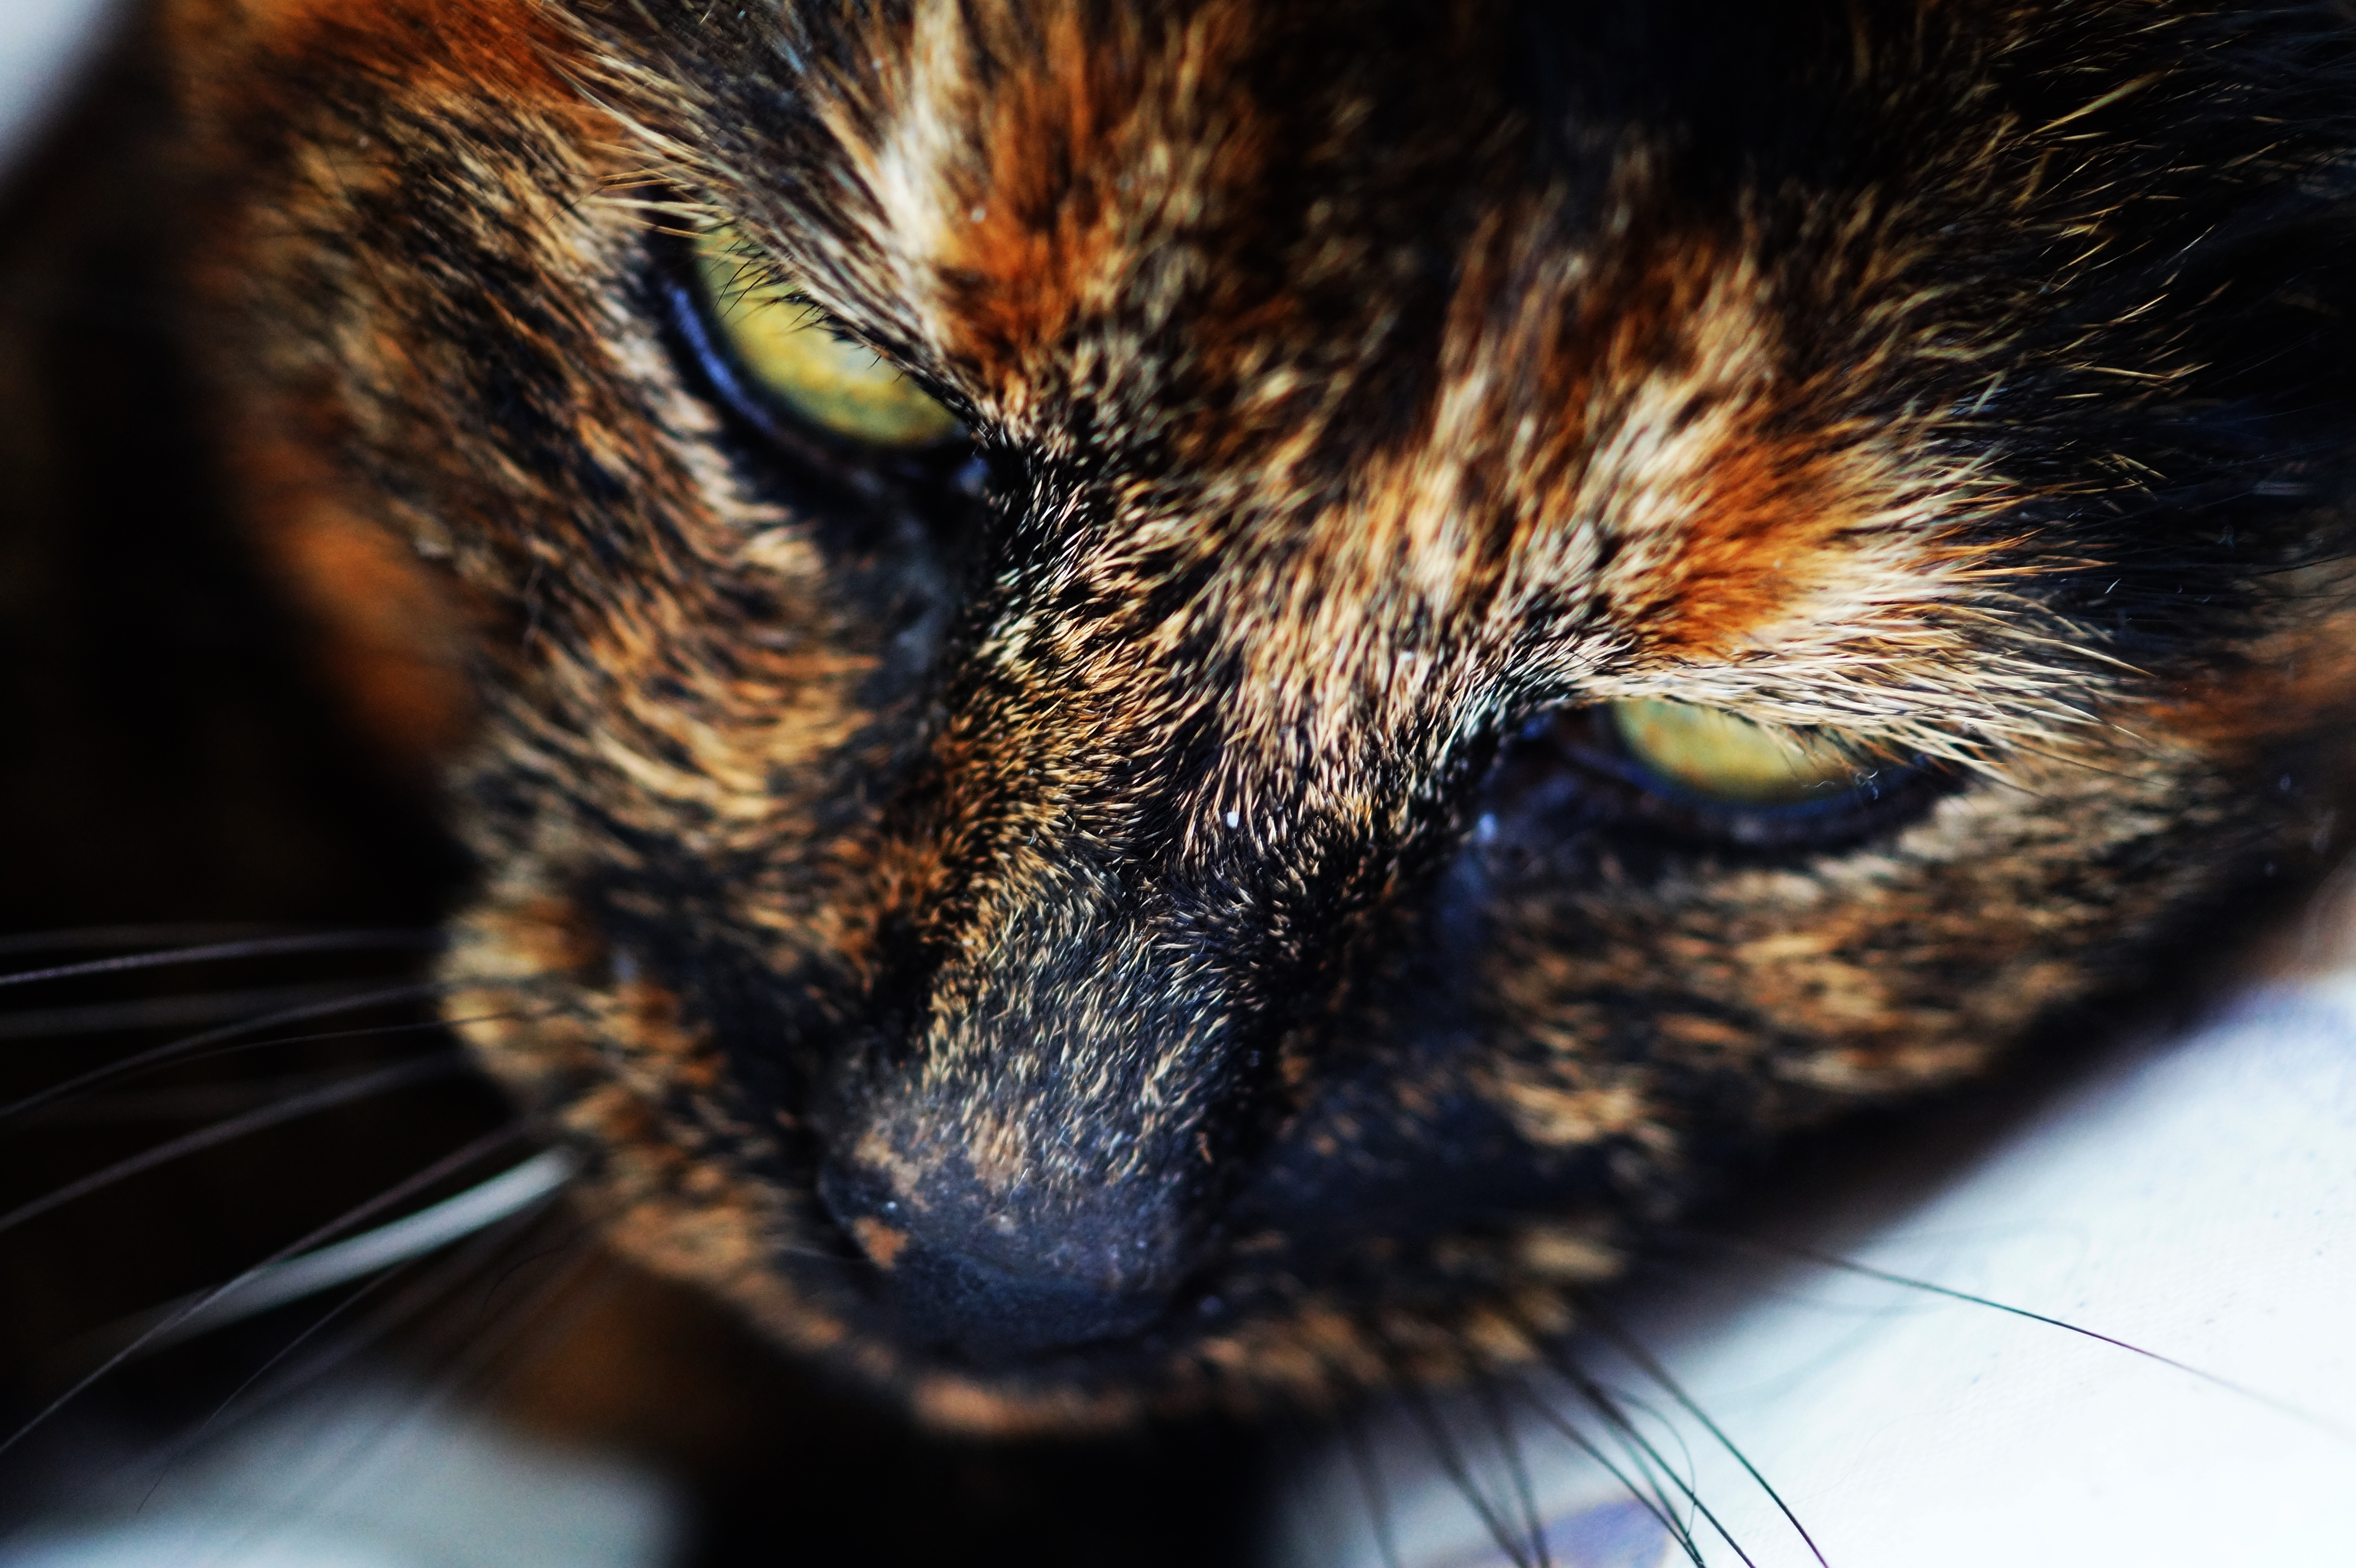 Photography Of Orange Brown And White Face Of Cat 183 Free